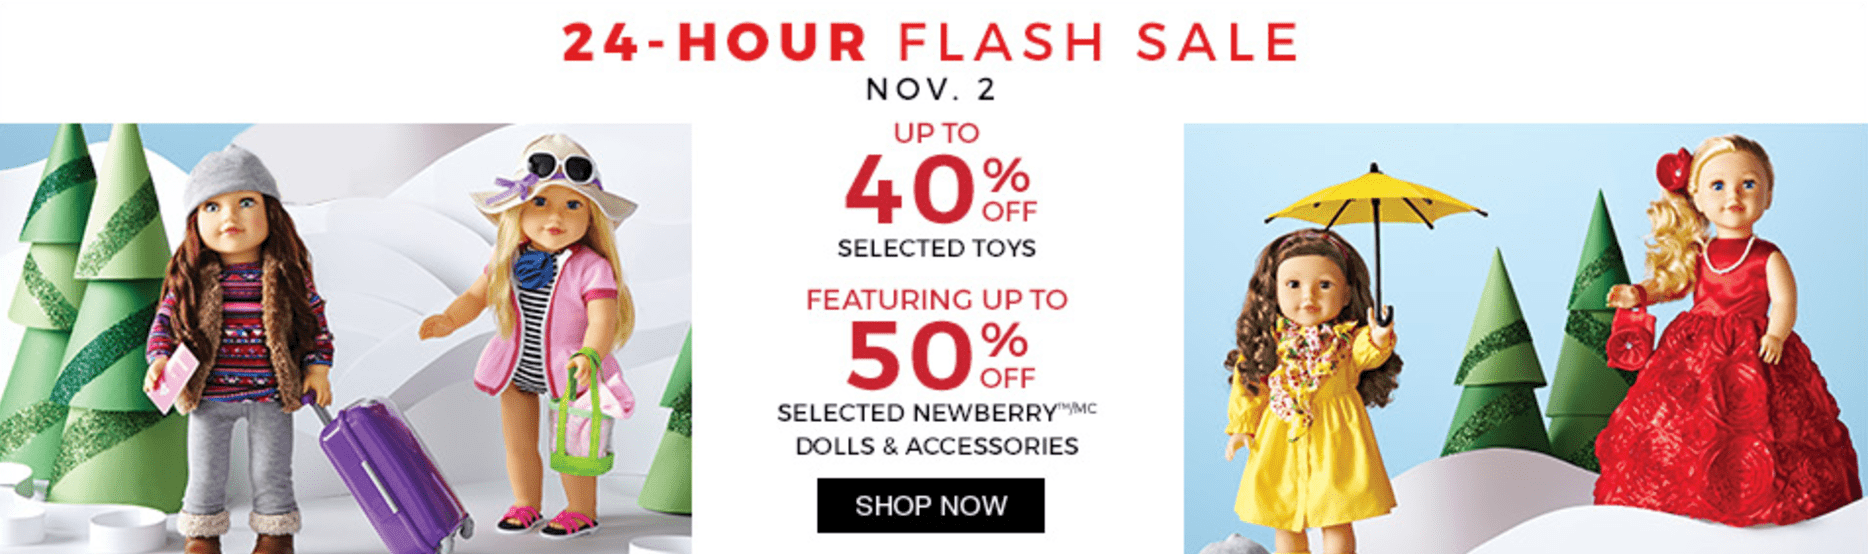 Sears Canada 24-Hour Flash Sale: Save Up to 40% Off Toys and Up to 50% Off Newberry Dolls